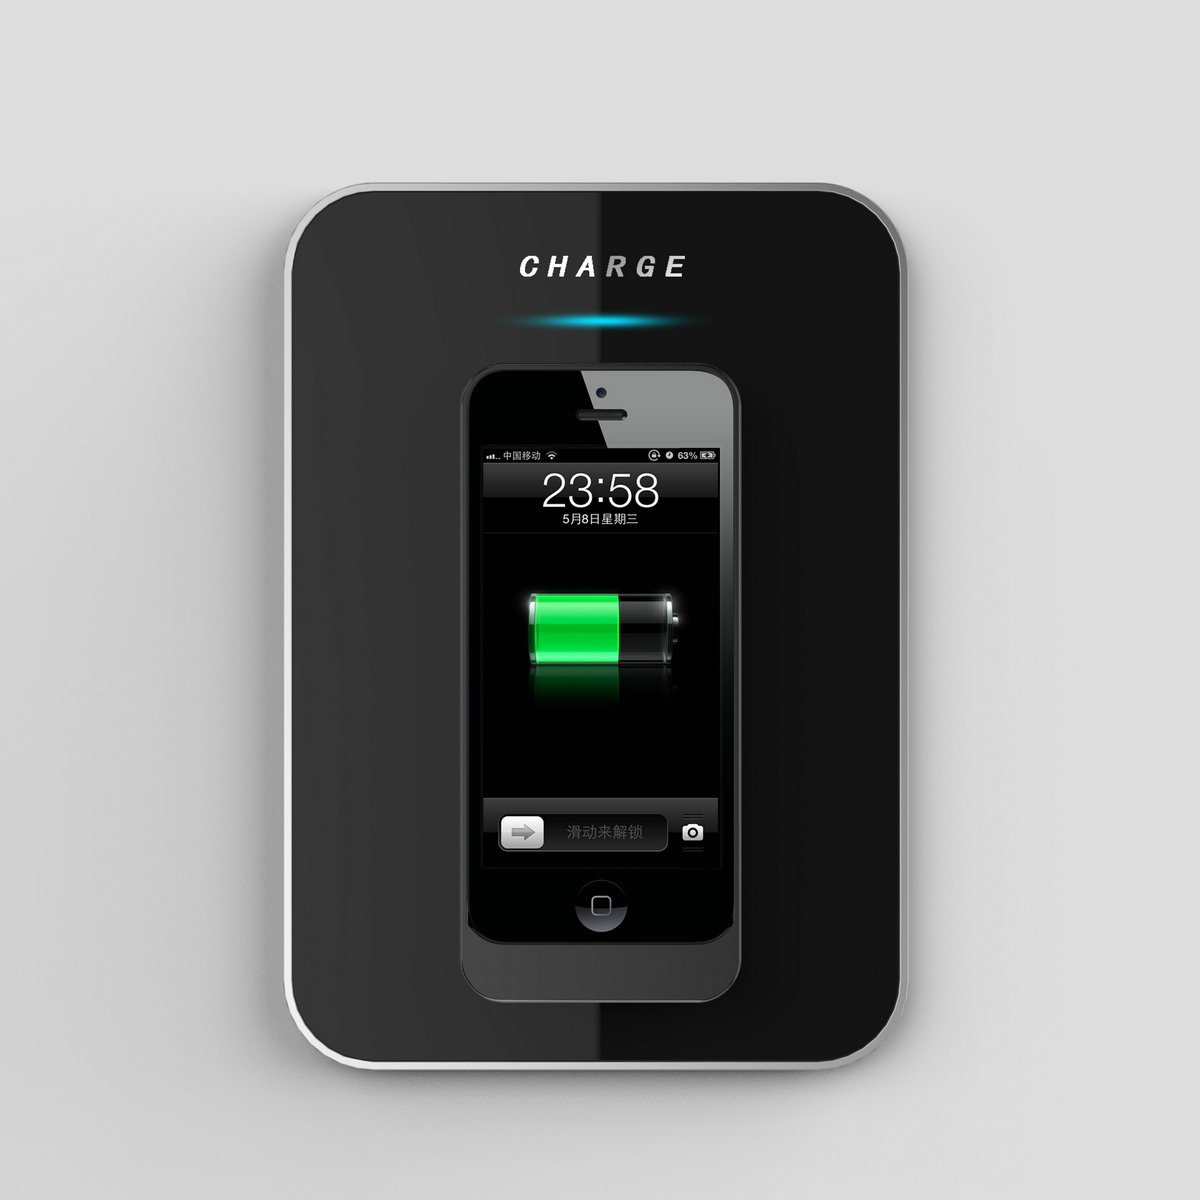 charging case for iphone 5c esorun announces to release the wireless charging 2216